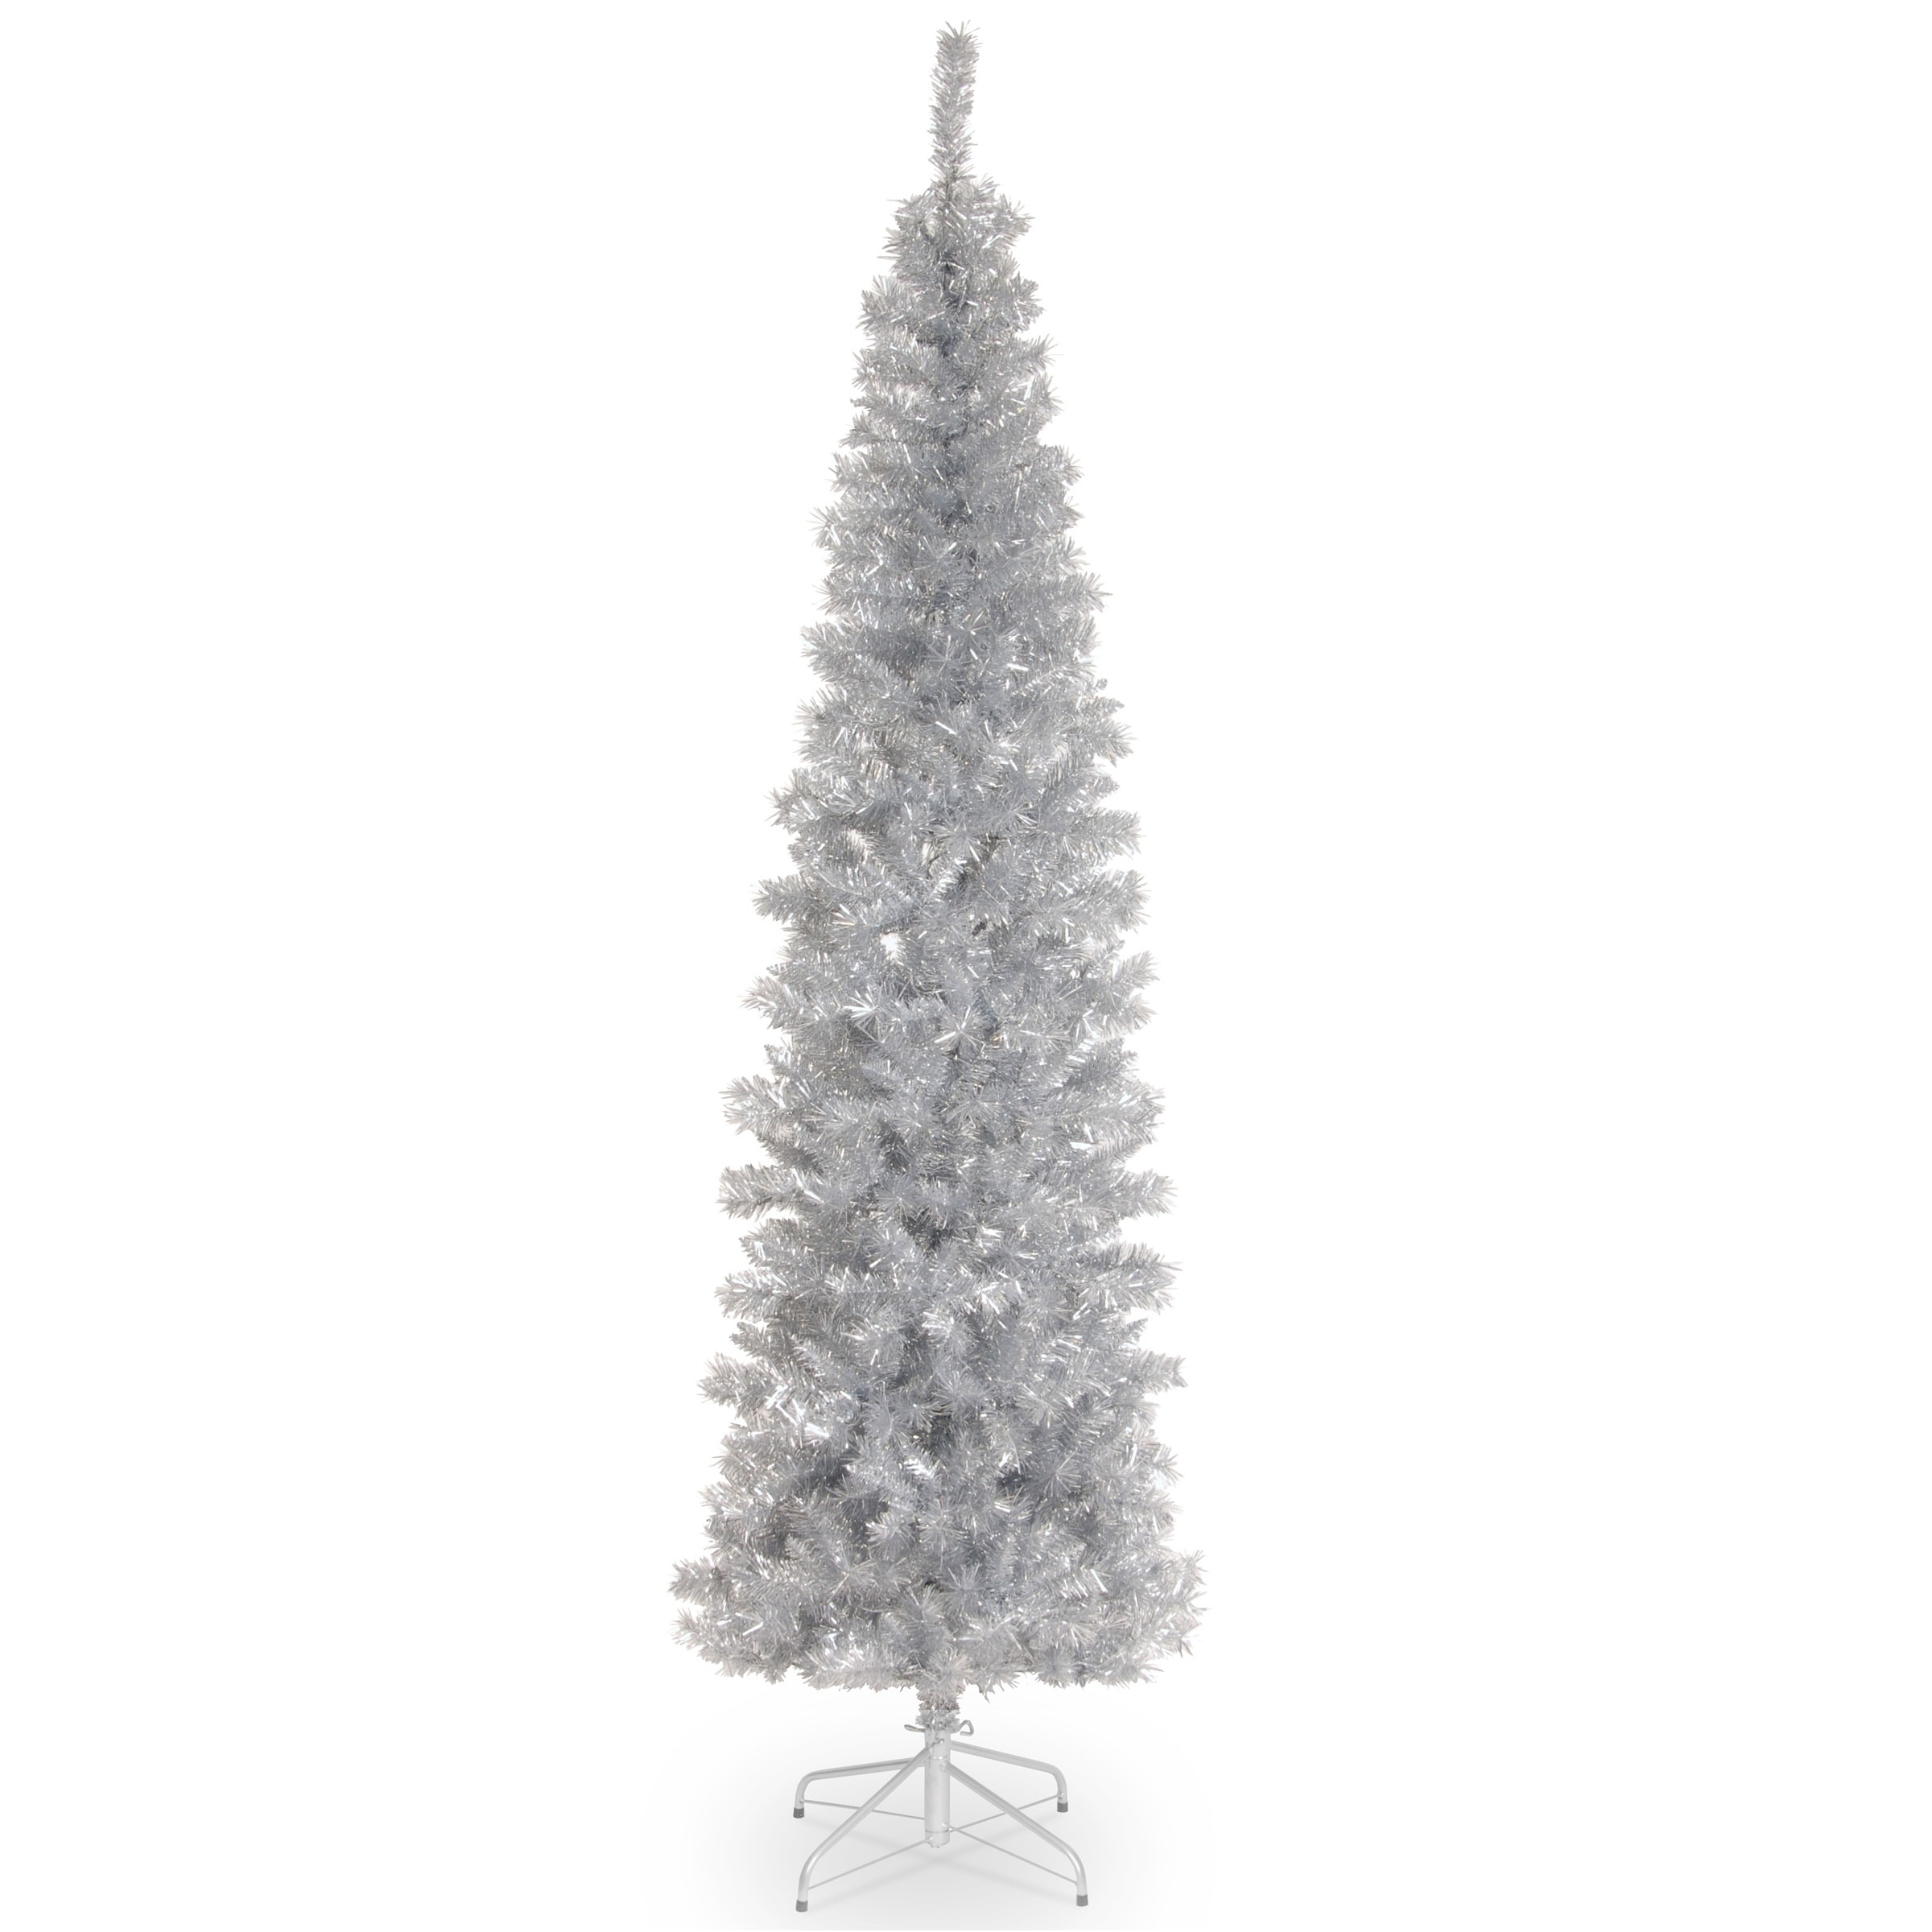 Shop 7 Ft Silver Tinsel Tree On Sale Free Shipping Today Overstock Com 17279357